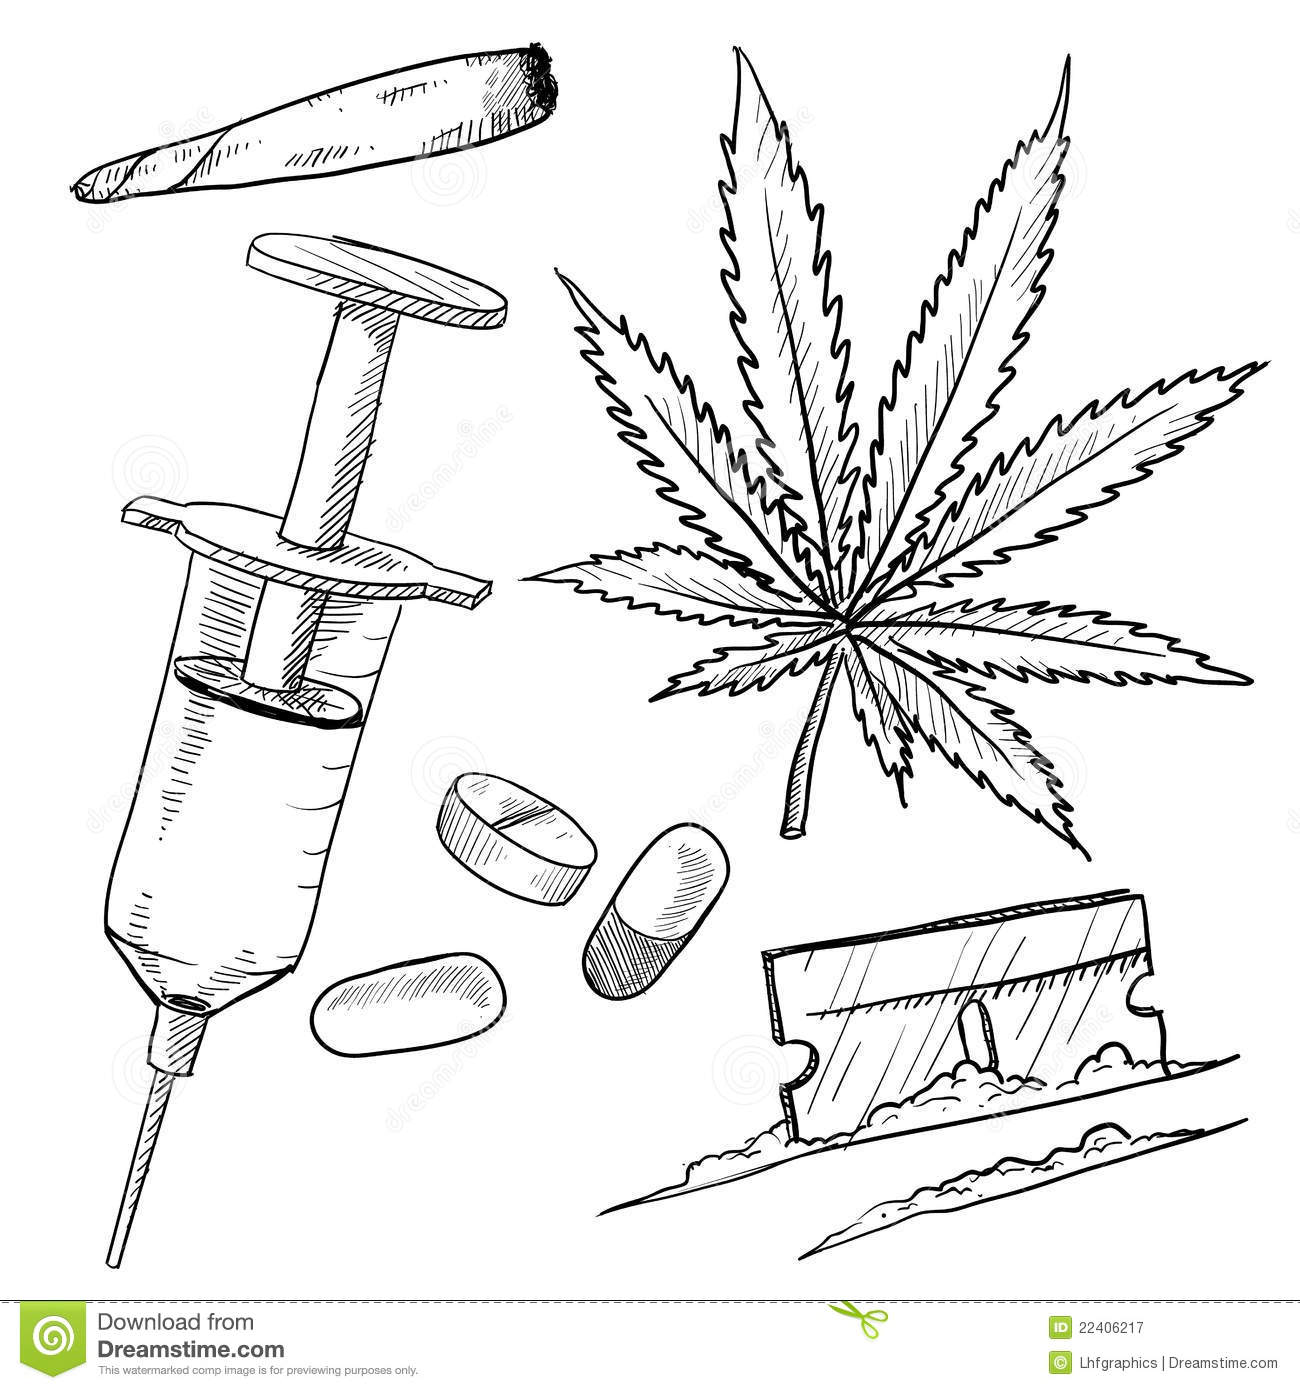 Illegal drugs drawing stock vector. Illustration of high